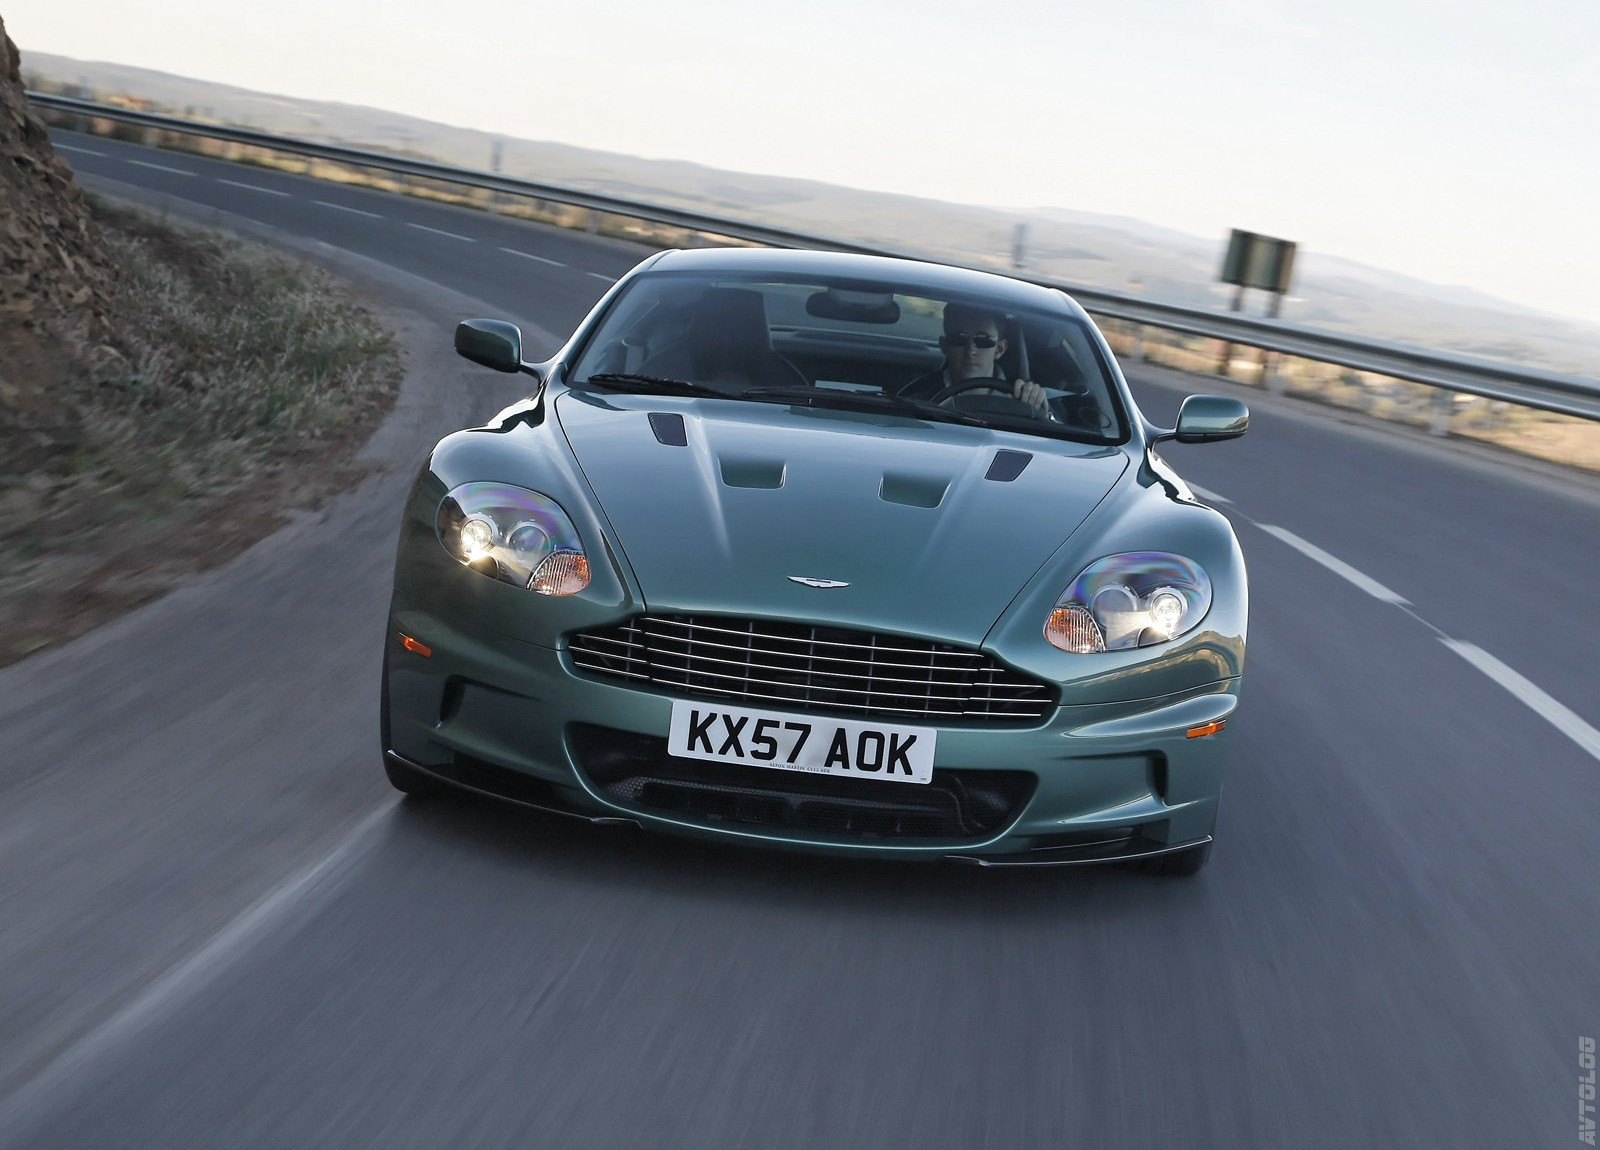 2018 Aston Martin DBS Racing Green photo - 1